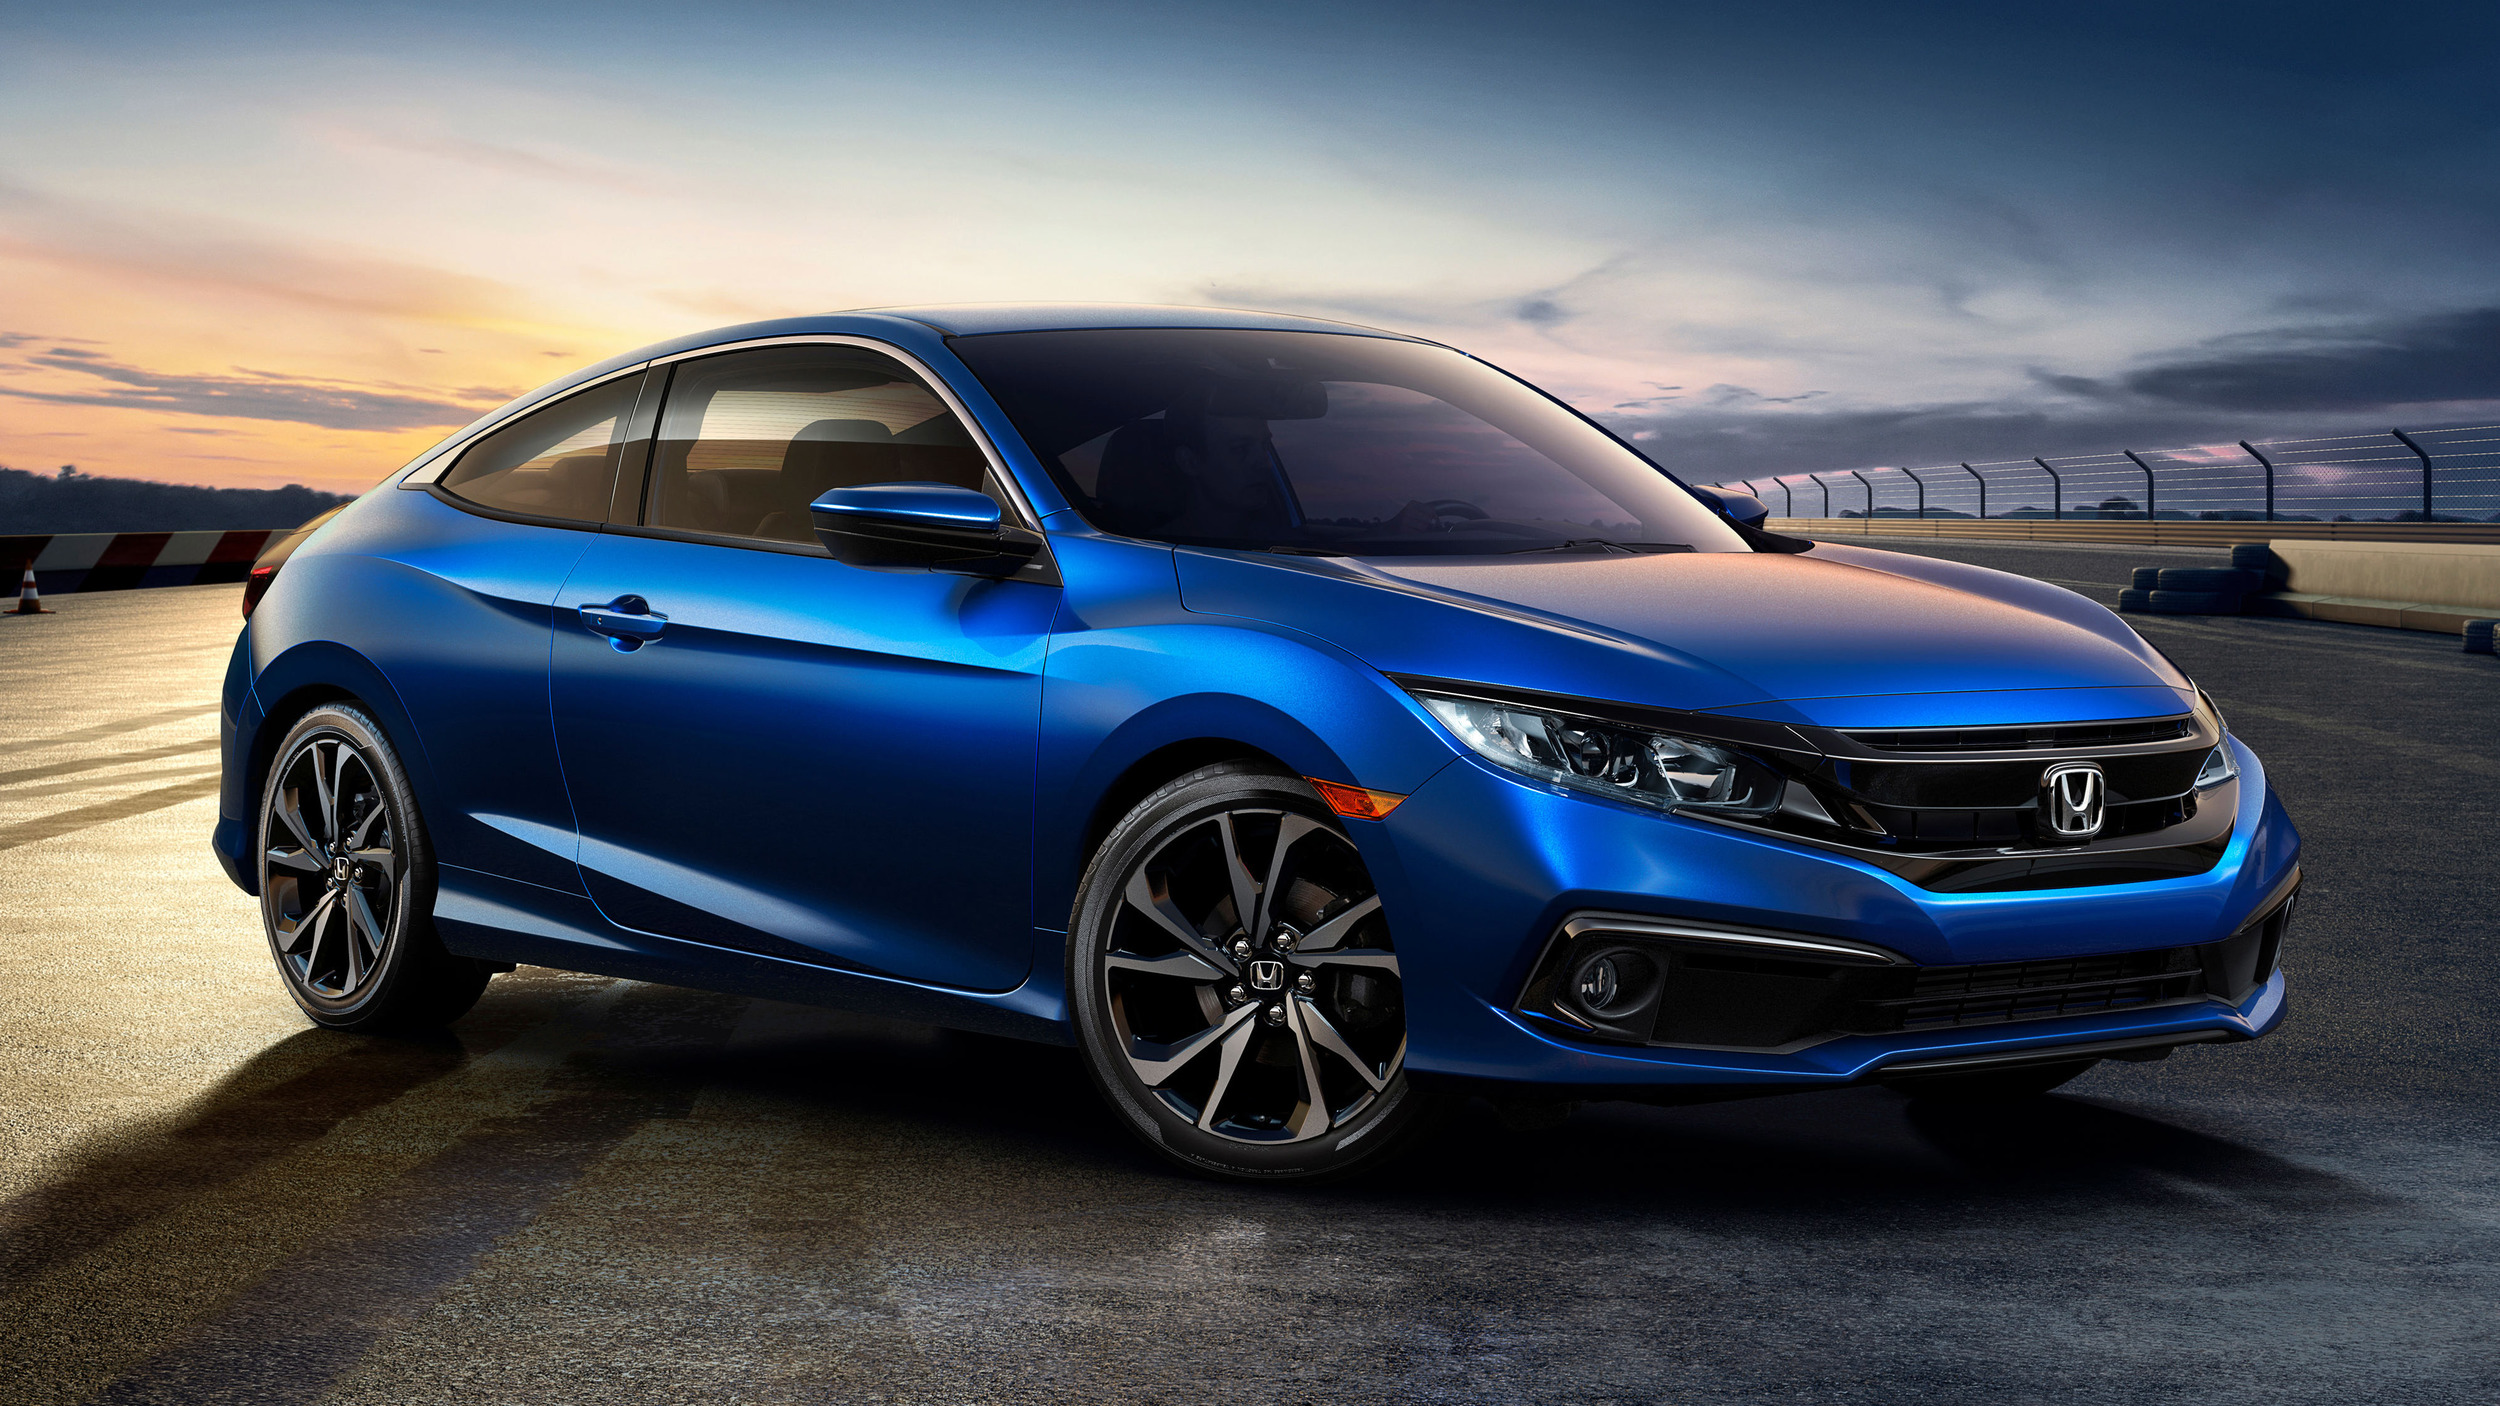 Honda Civic 2019 perfil